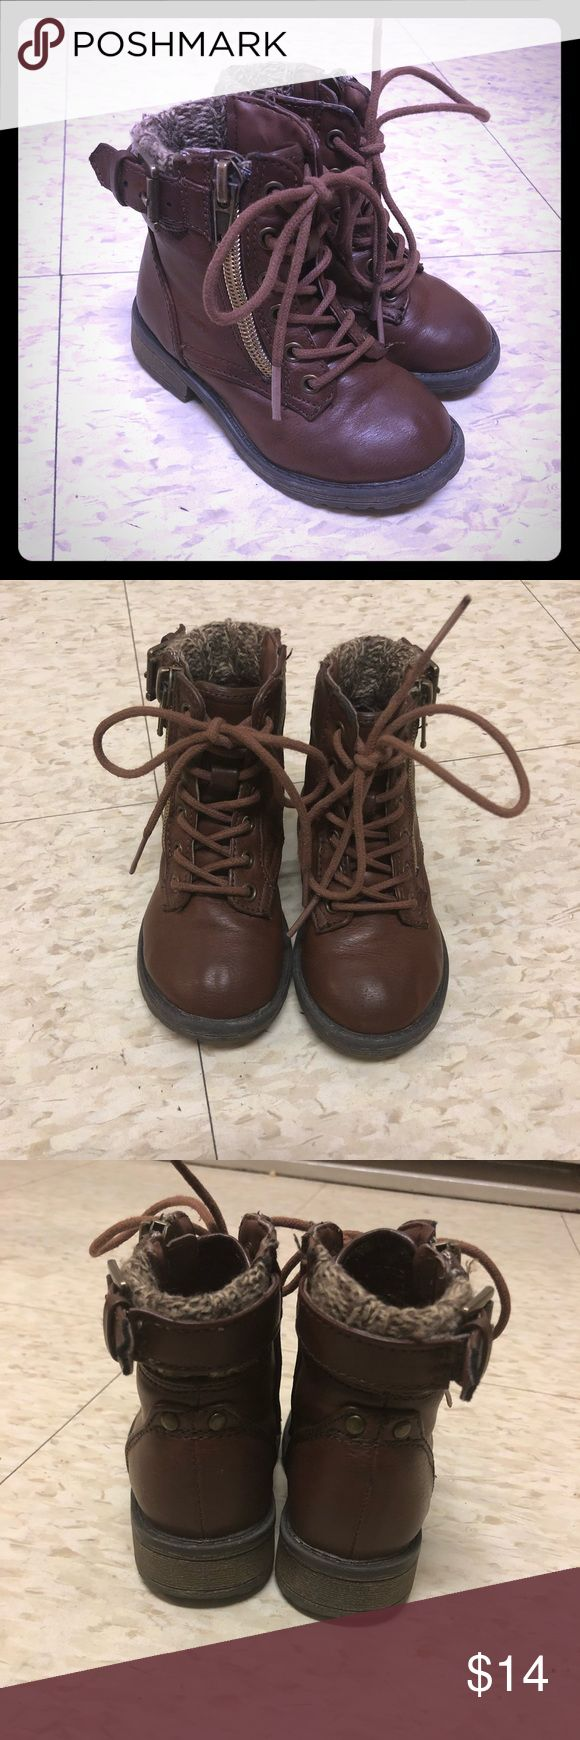 Steve Madden Toddler Girl Boots Size 6 Steve Madden Toddler Girl lace up boots!  Size 6  Buckle on top - zip up the side - lace up the front .  Absolutely adorable boots. One of my favorites.  Gently worn. A few scuffs on left toe, but you honestly can't tell unless you're holding it close to your face. Steve Madden Shoes Boots